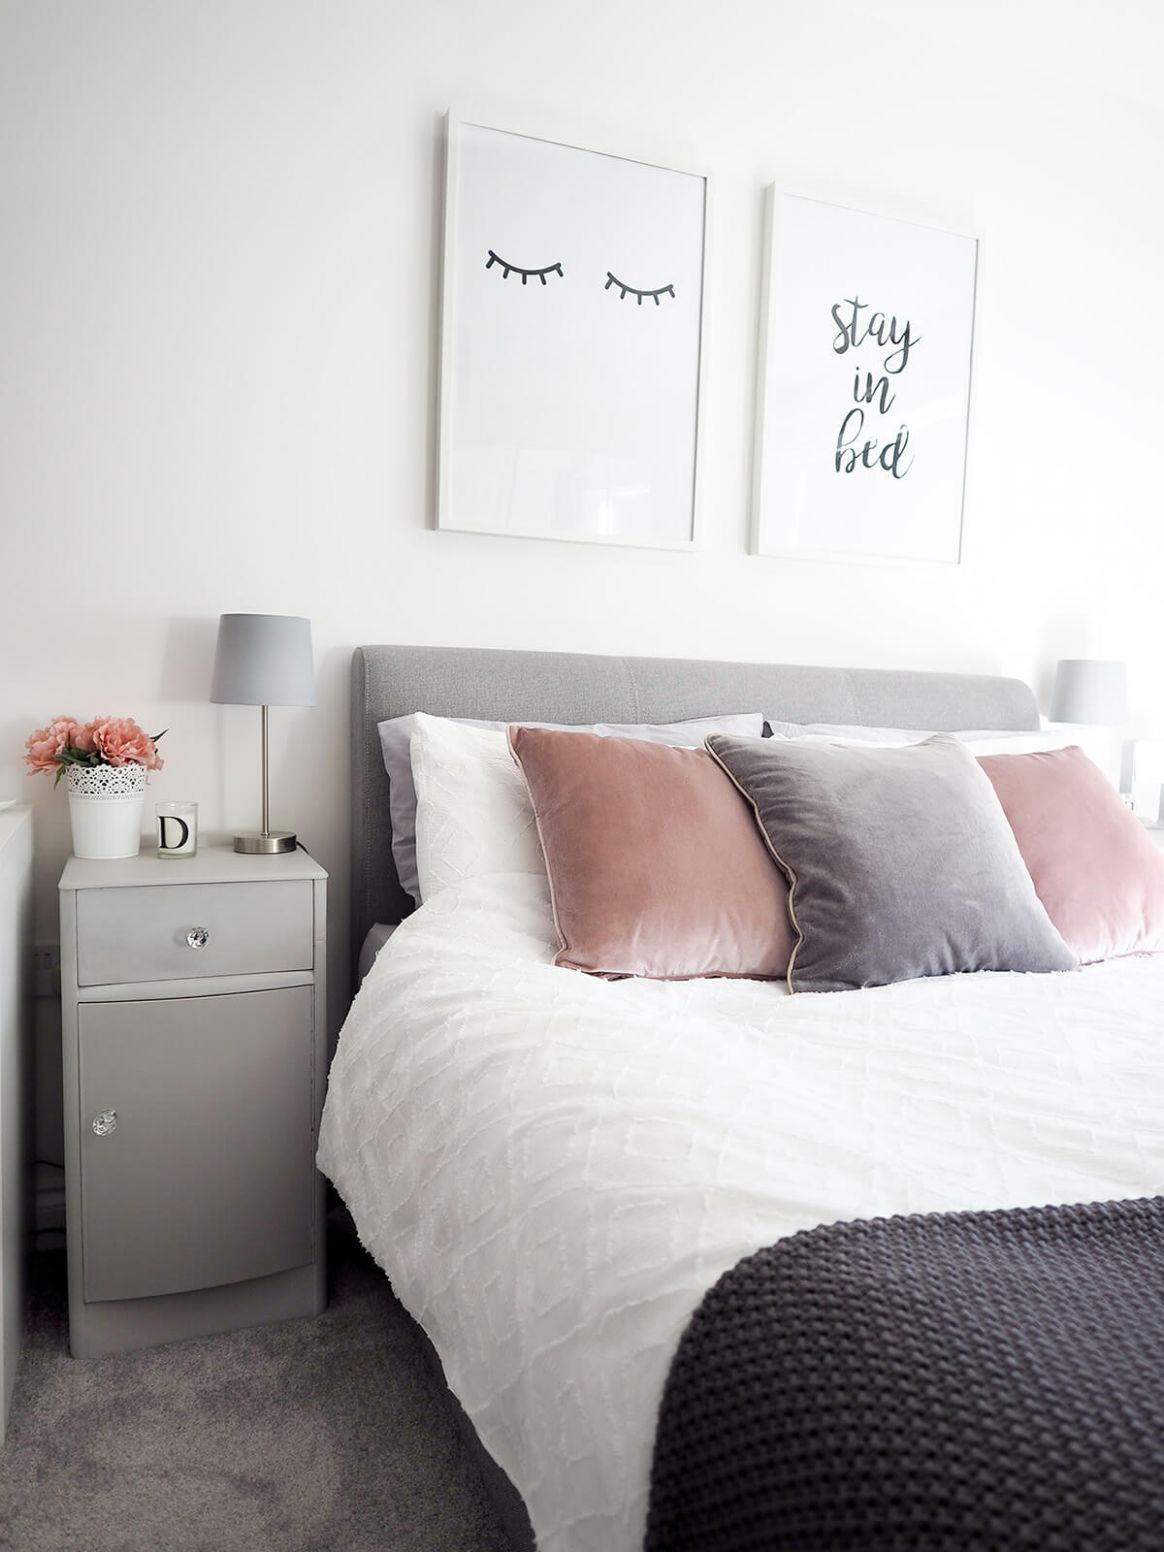 9 Best Trendy Bedroom Decor and Design Ideas for 9 - bedroom ideas easy